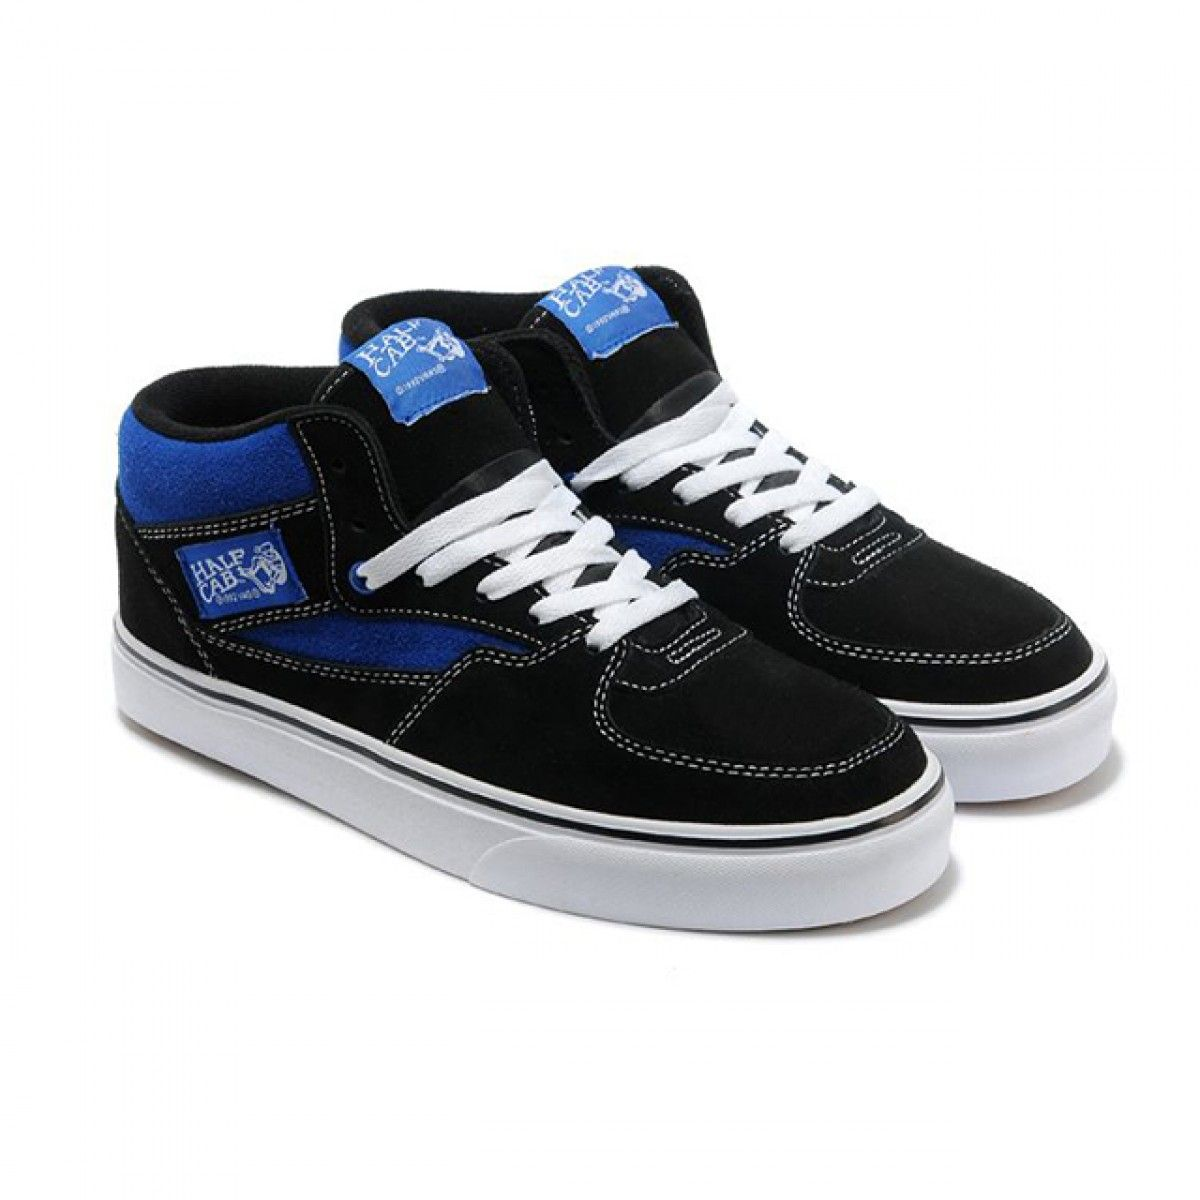 03f0252243 Vans Shoes Black Blue 20th Anniversary Half Cab Shoes Mens Classic Canvas